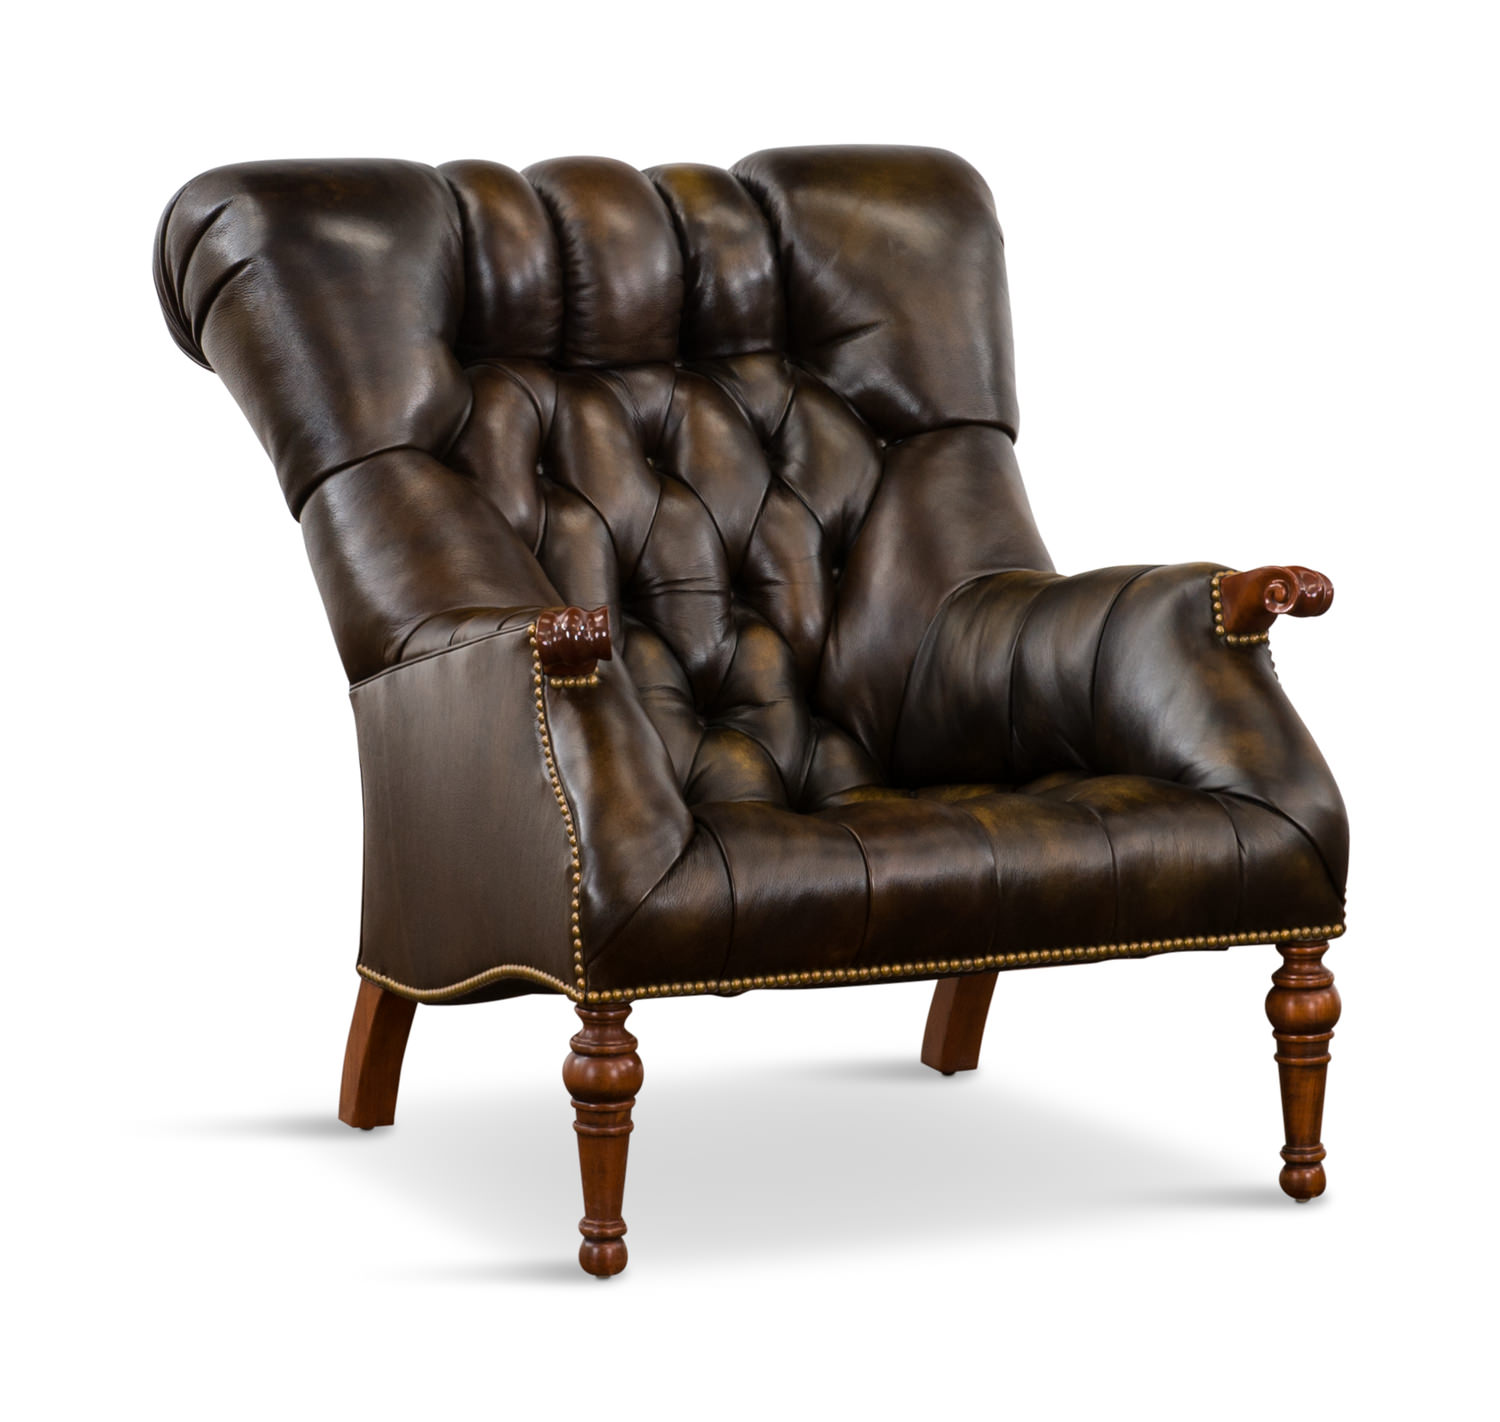 Attirant Leopold Chair Leopold Chair